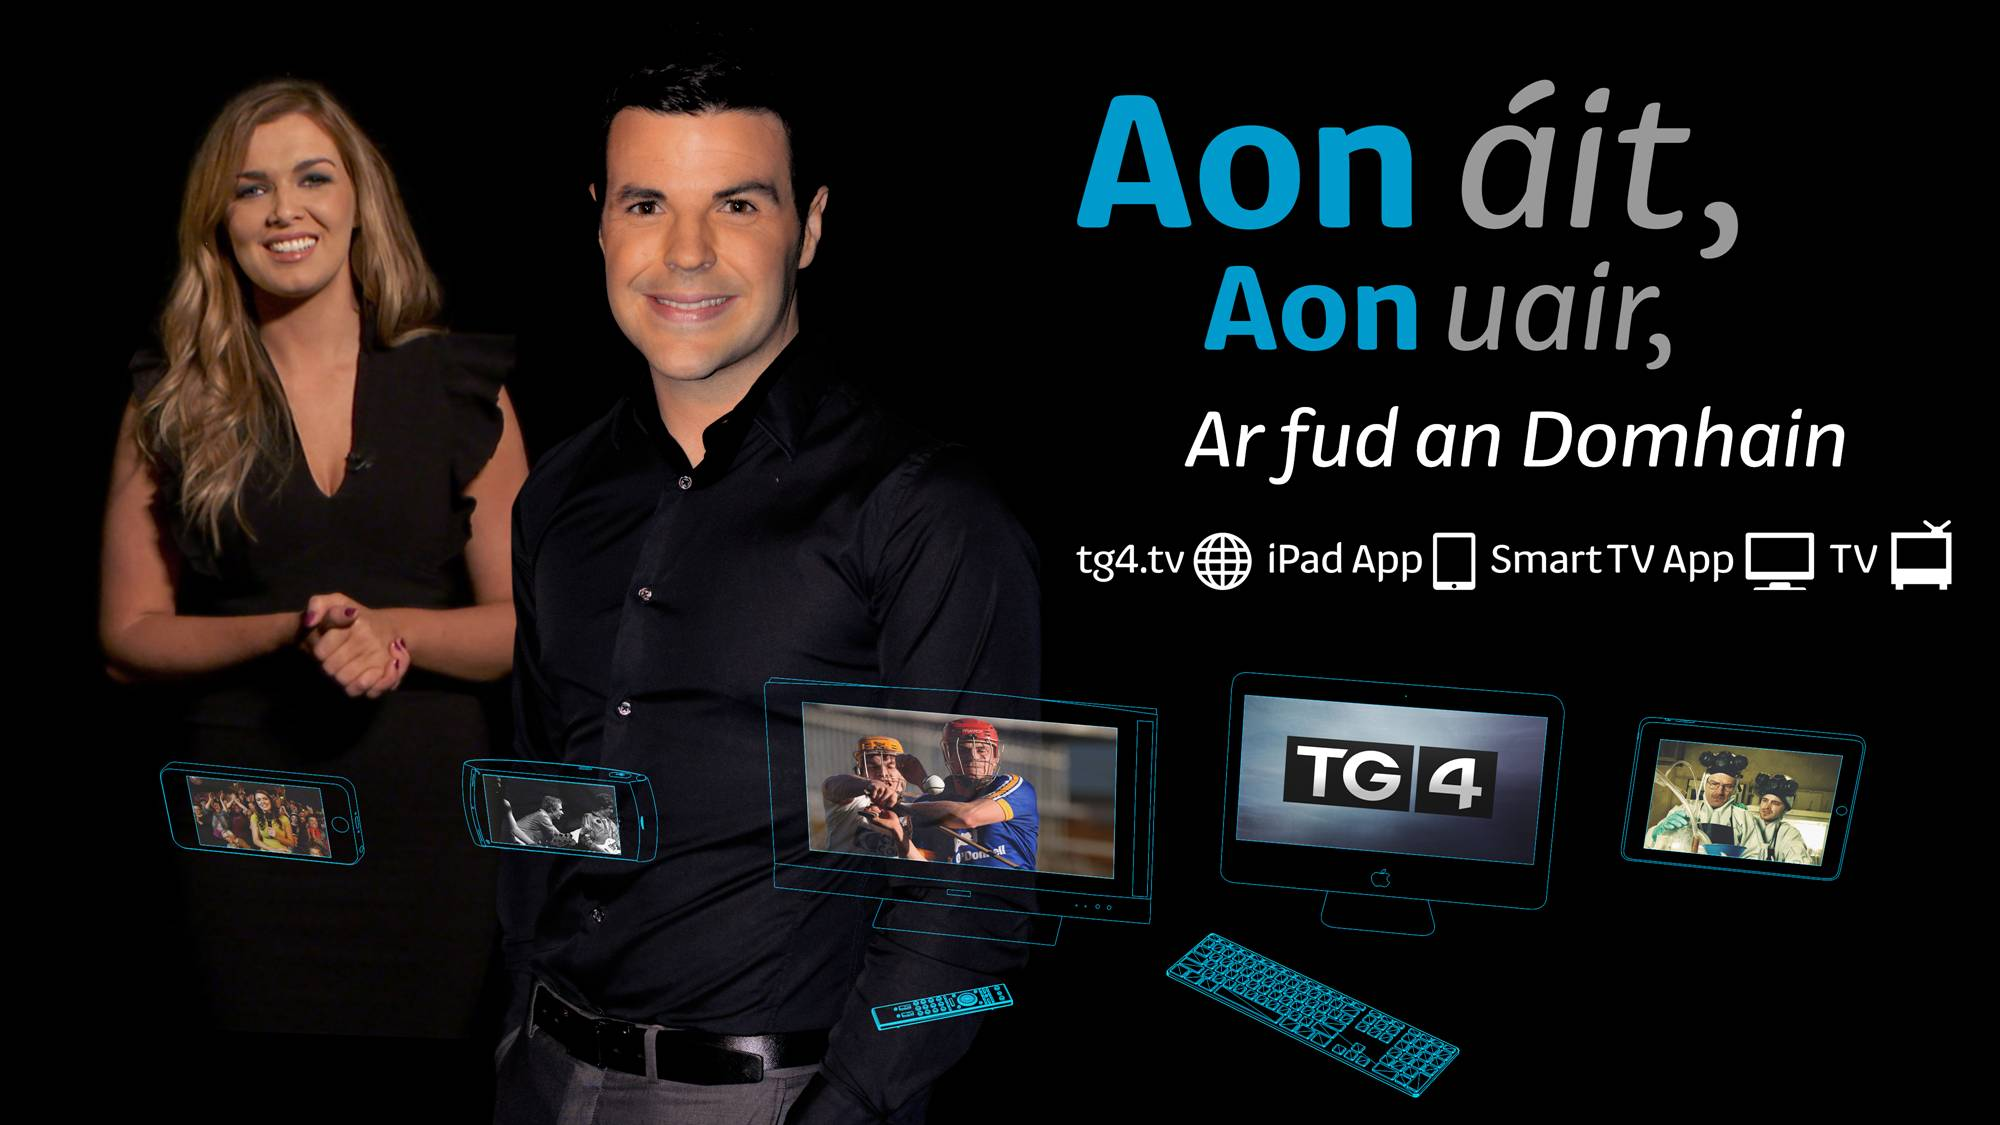 TG4 launches on smart TV, updates player and iPad app